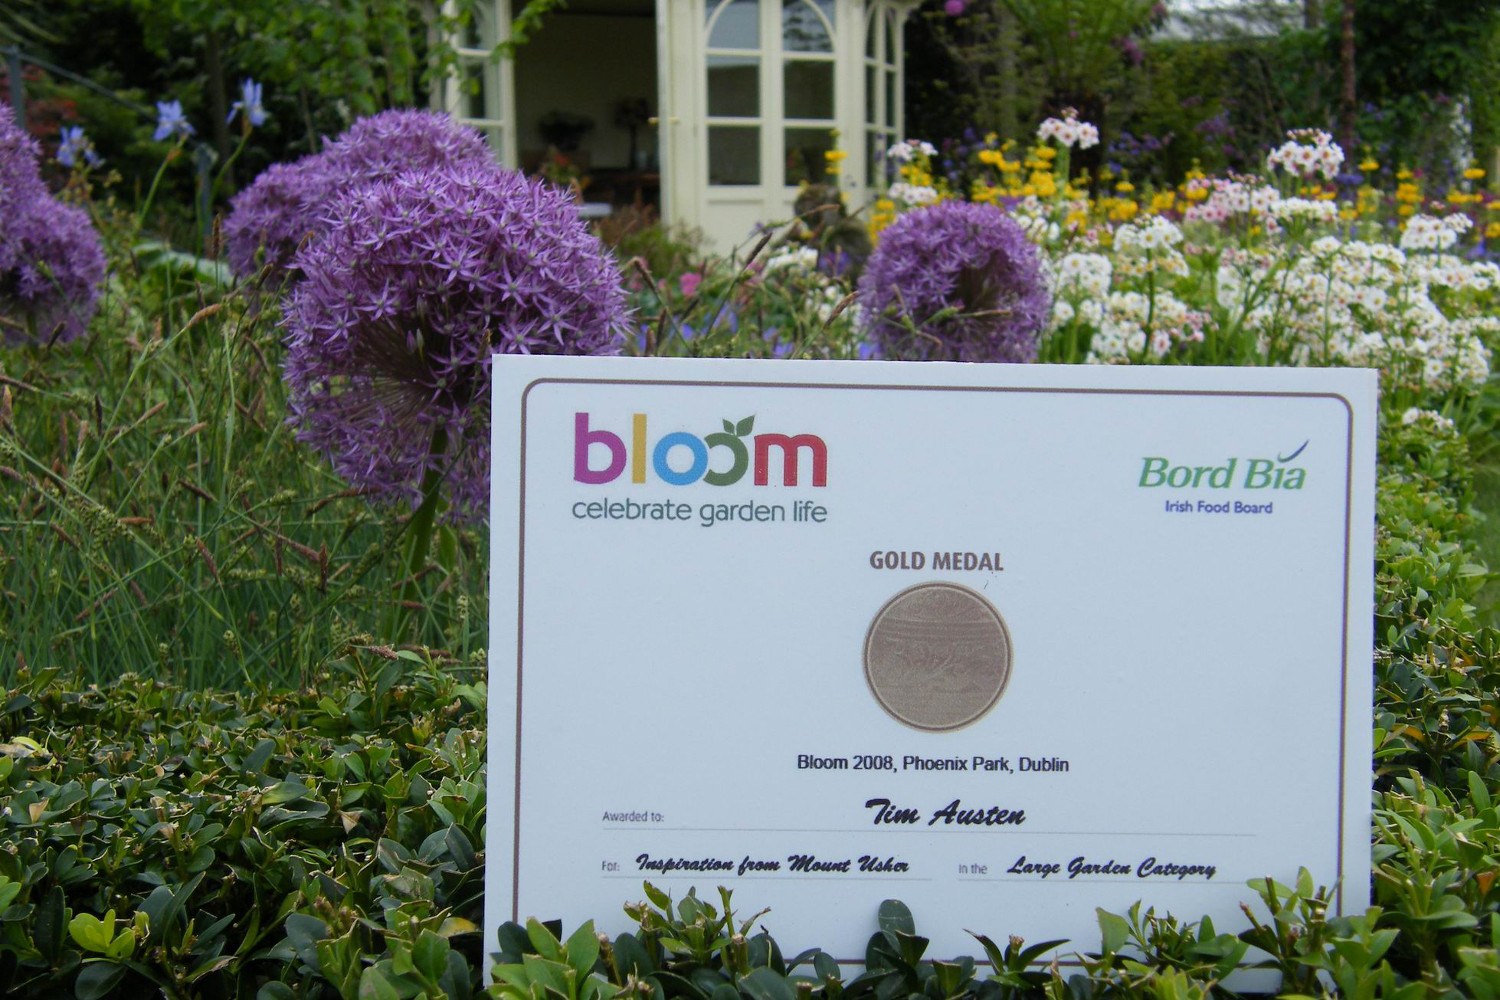 Tim-Austen-Garden-Design-Bloom 2008 Inspiration from Mount Usher-9